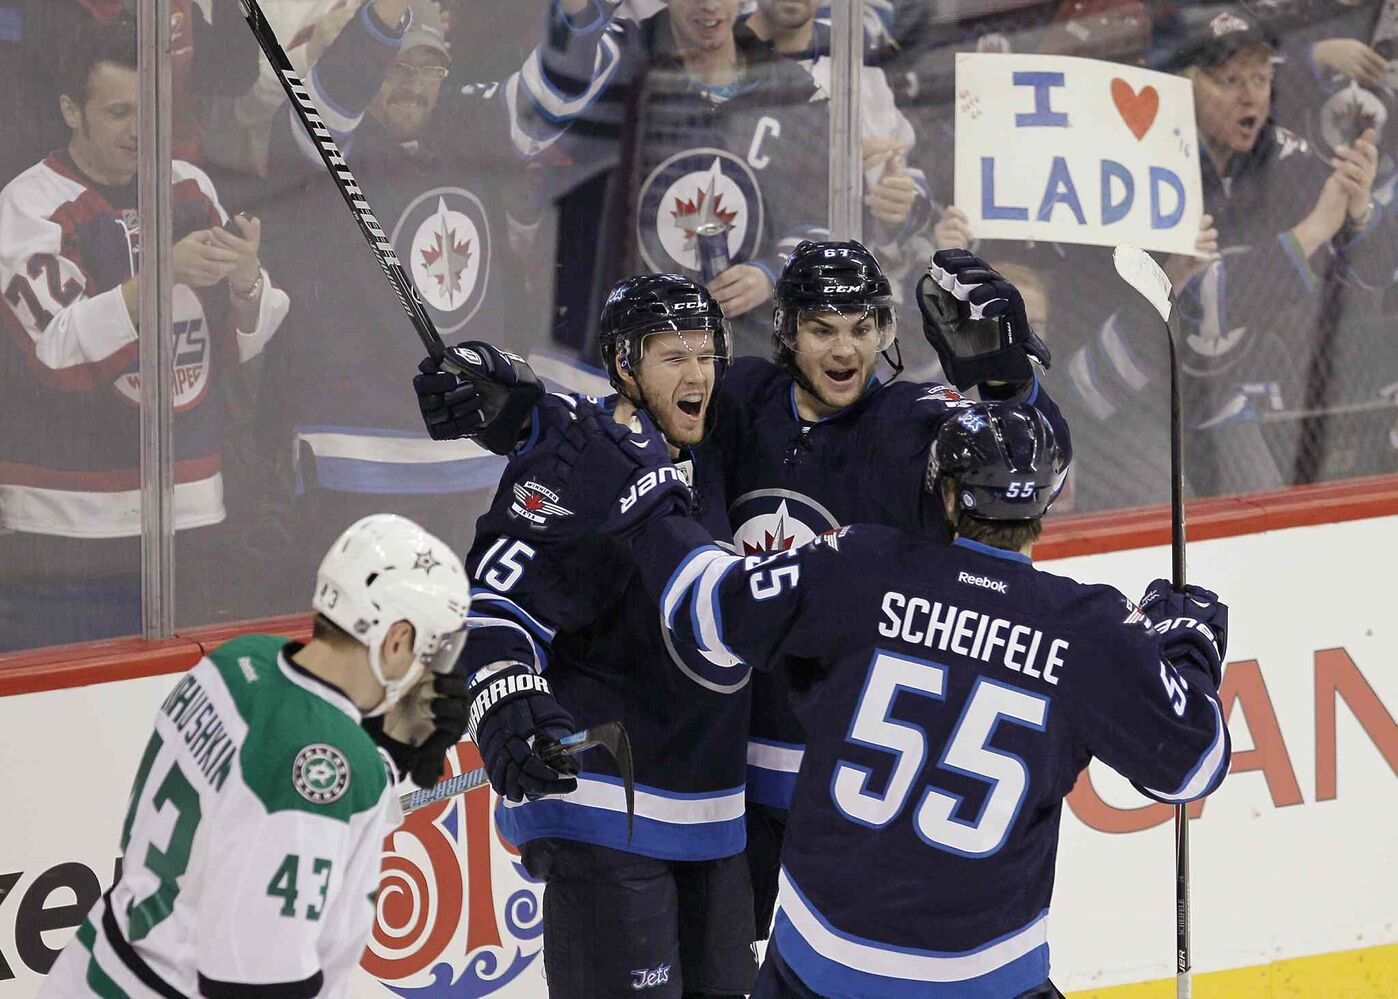 Matt Halischuk (centre left), Michael Frolik (centre right) and Mark Scheifele (right) celebrate Halischuk's first-period goal as Dallas Stars forward Valeri Nichushkin skates. (JOHN WOODS / THE CANADIAN PRESS)